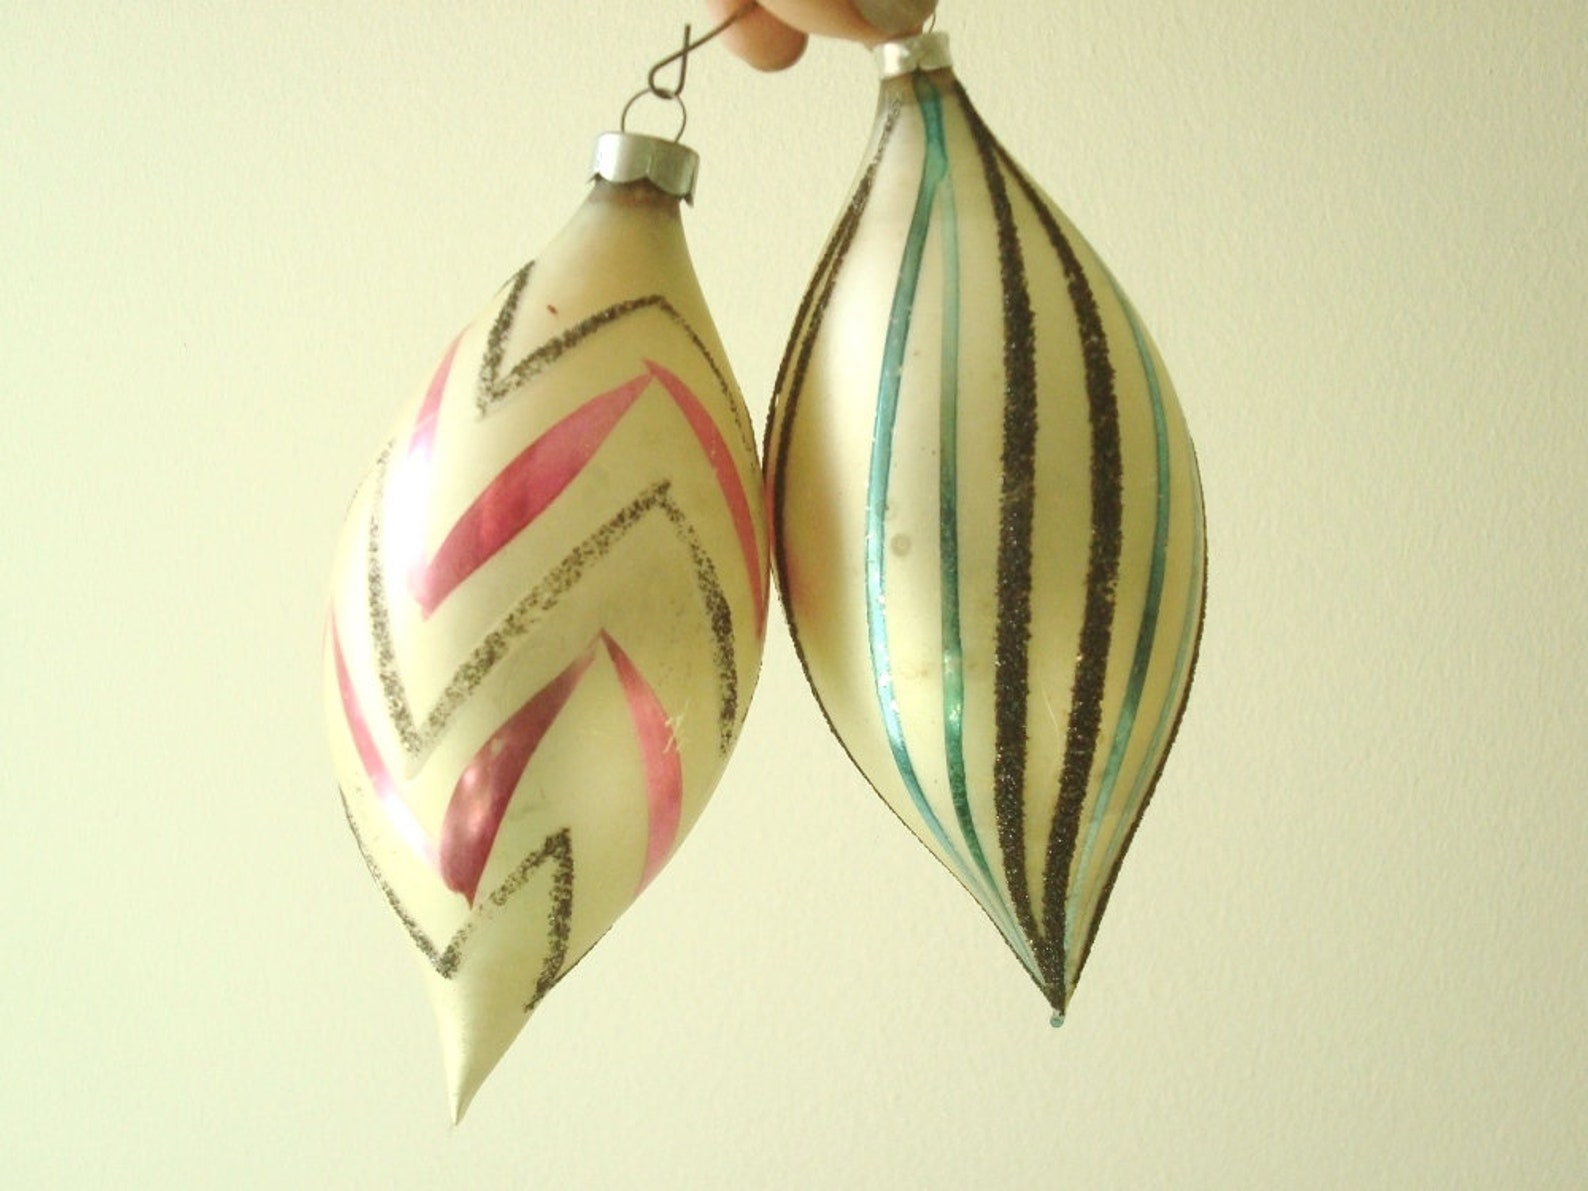 2 vintage German glass Christmas ornaments, pink & green swirl flocked frosted teardrops, large 5